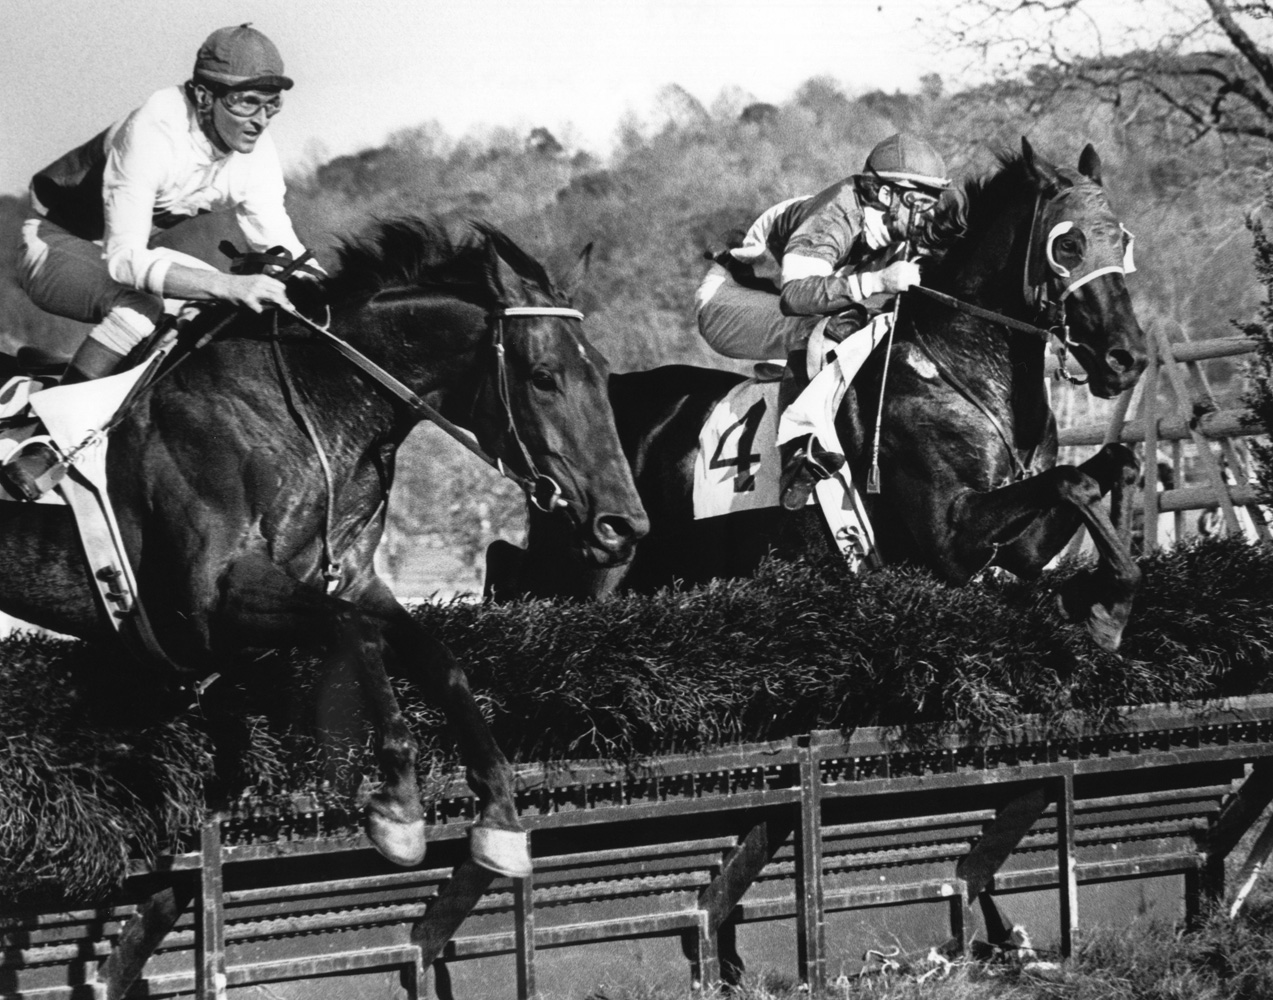 Café Prince with Jerry Fishback up (left) at the 1977 Samuel Martin Memorial Essex Hunt at Far Hills (Douglas Lees/Museum Collection)